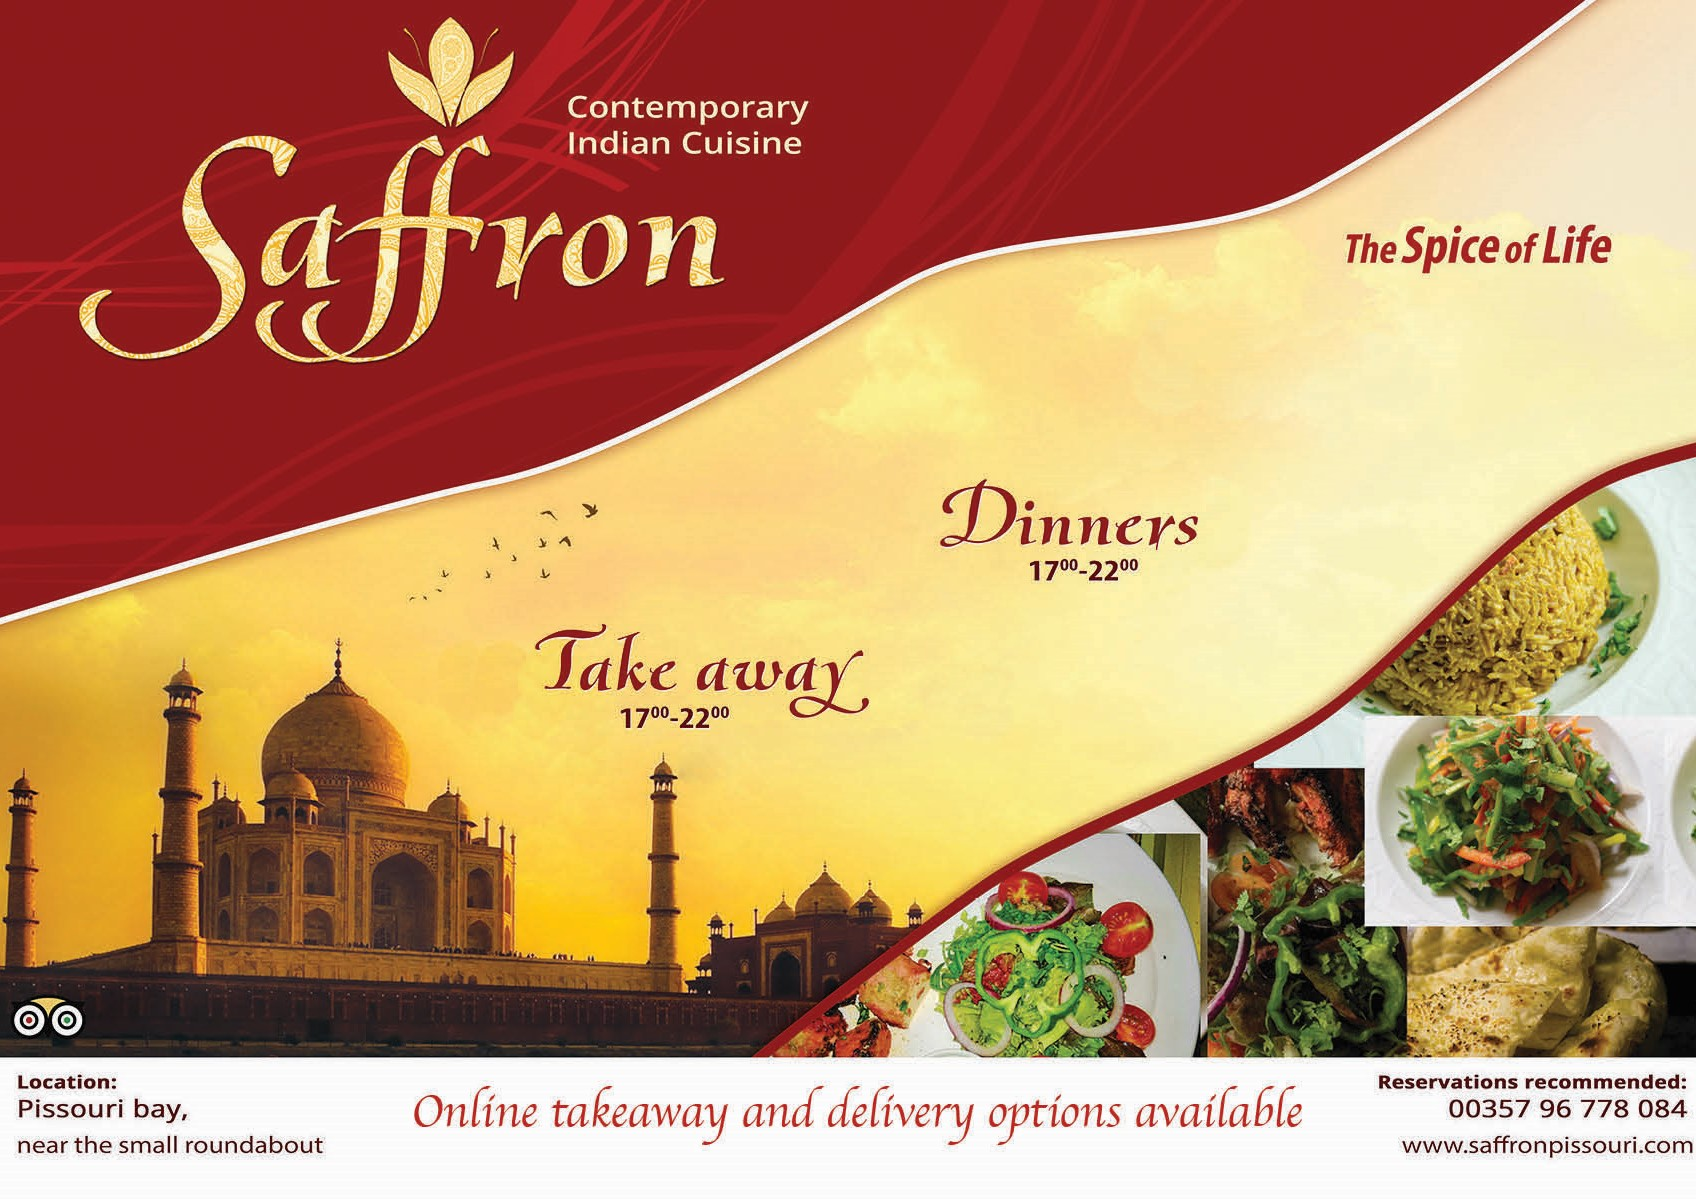 Saffron ad updated